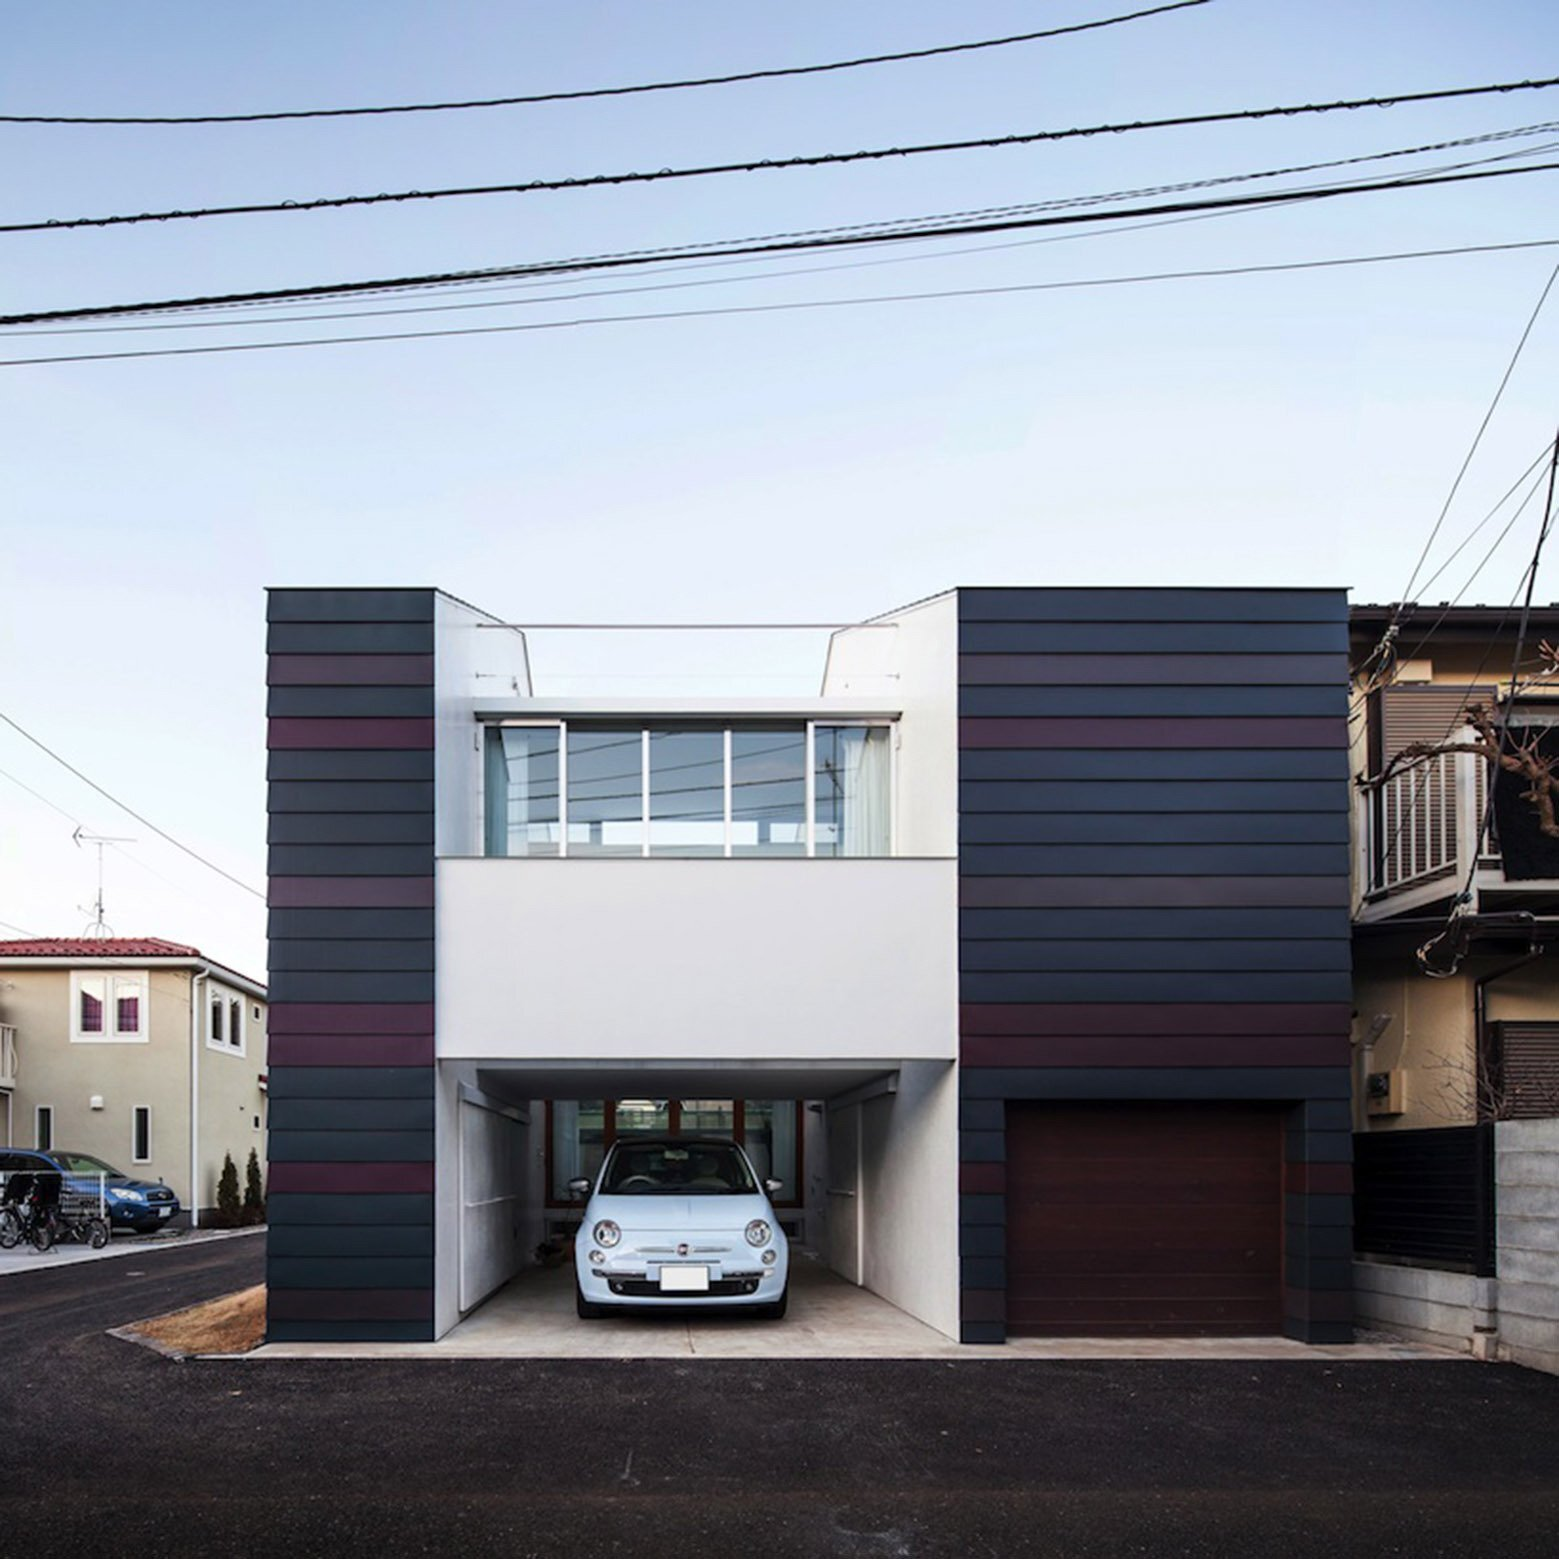 SEPA - Small House -S Shintaro Matsushita + Takashi Suzuk - Japan - Exterior - Humble Homes